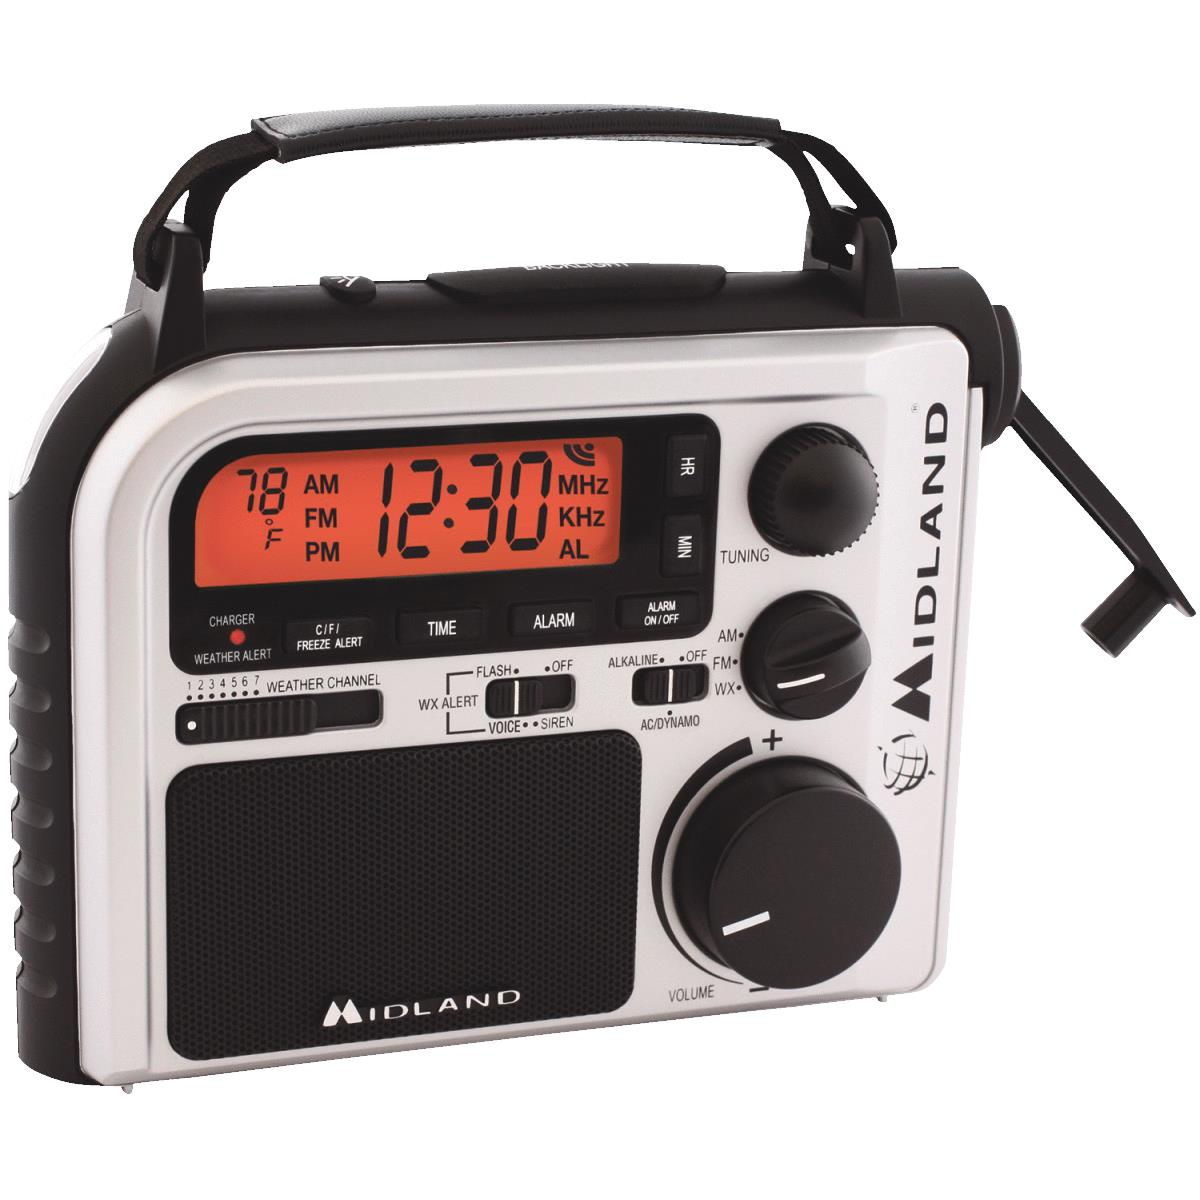 Emergency Crank Weather Alert Radio